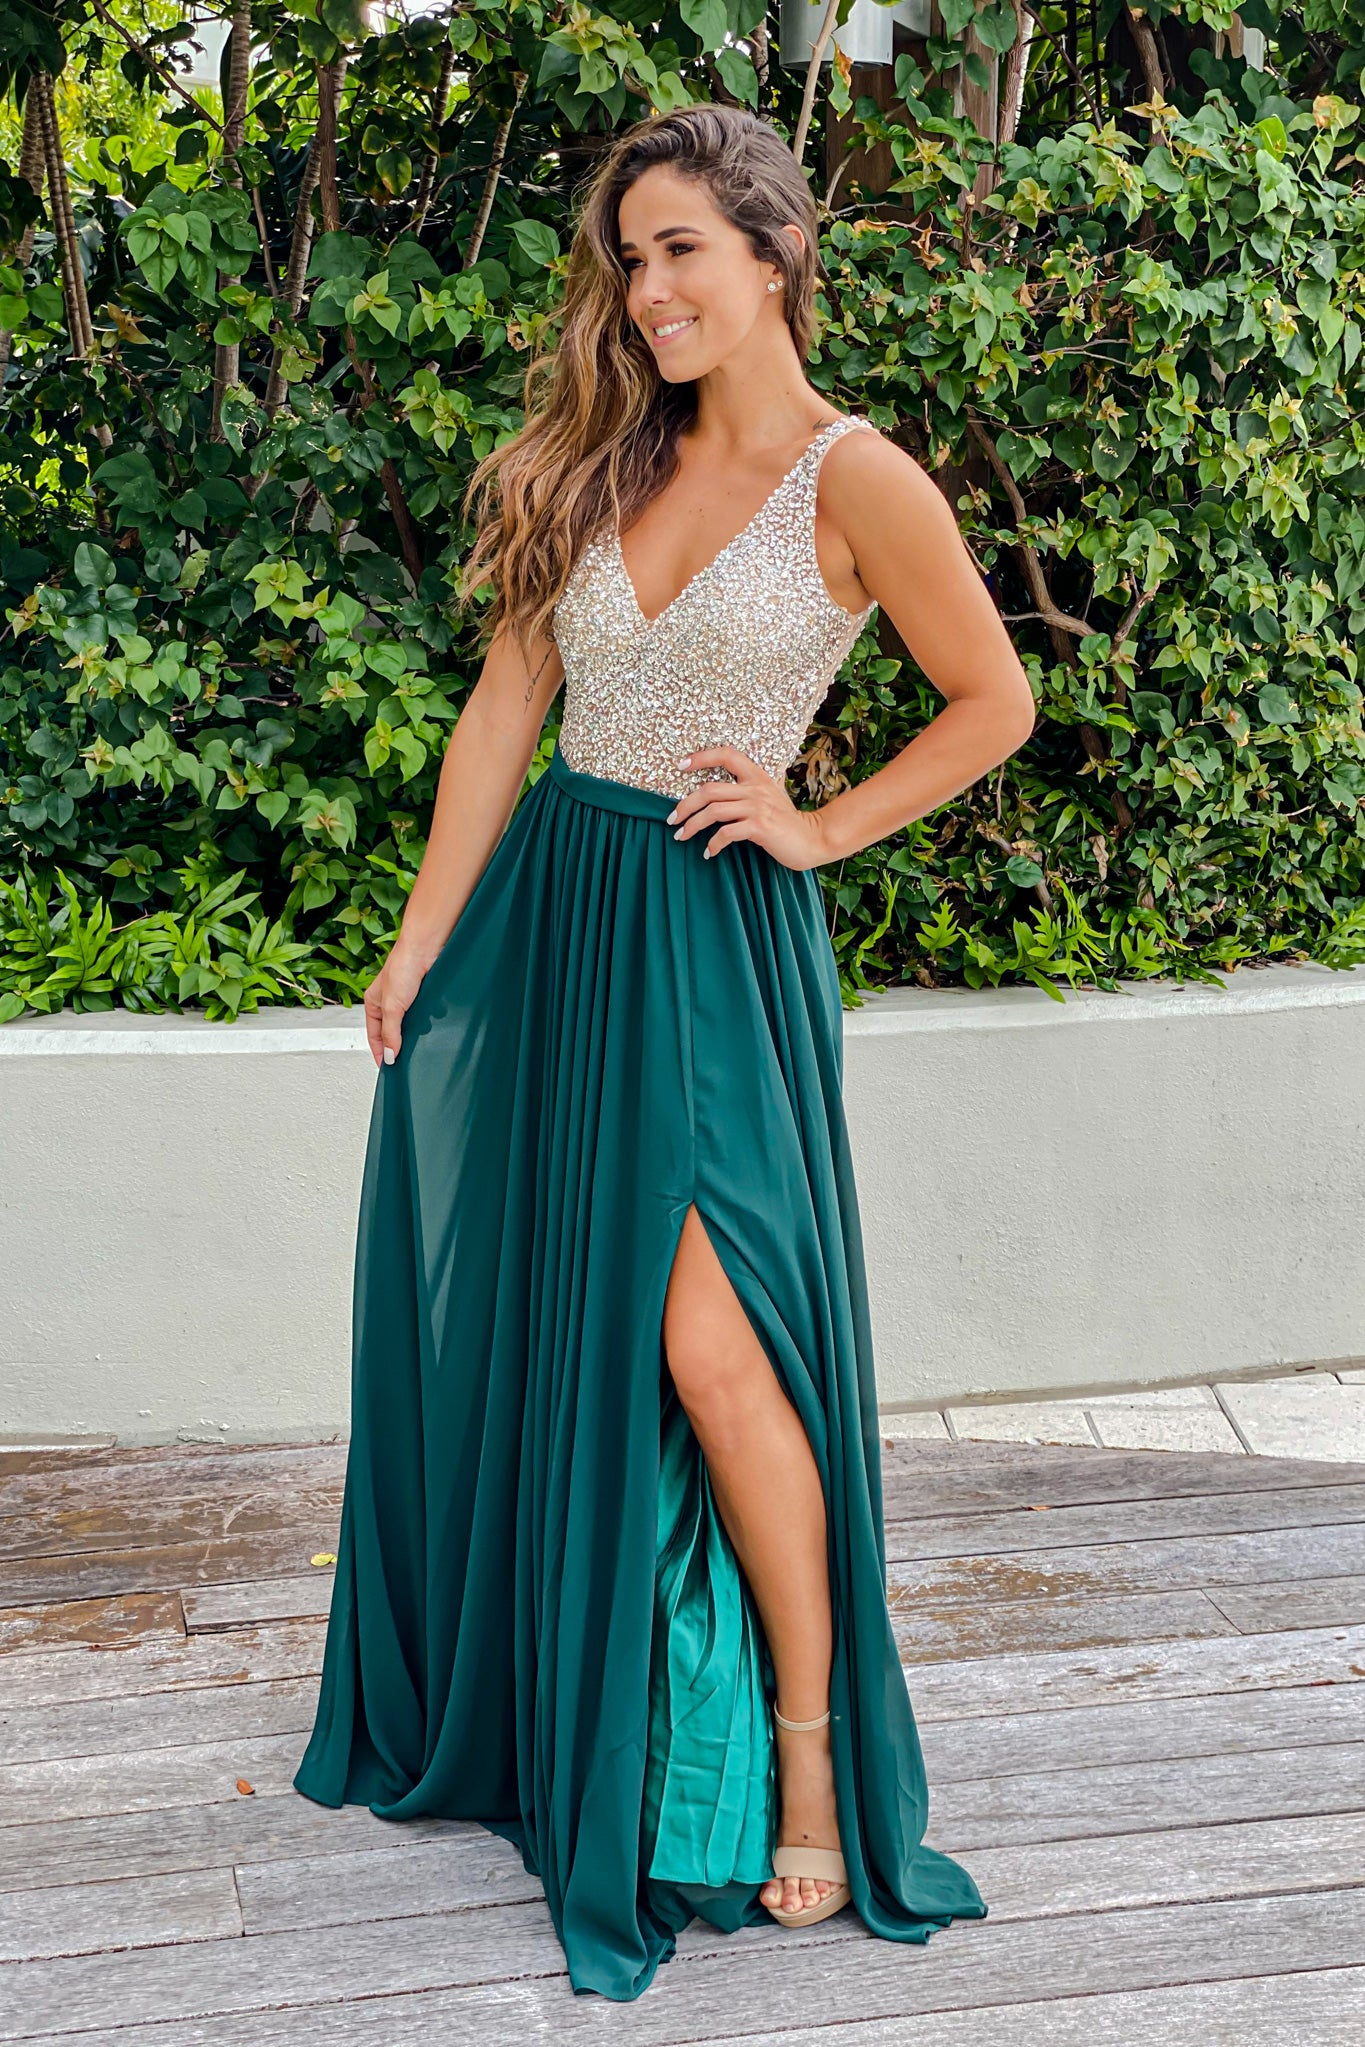 Hunter Green Maxi Dress with Silver Jewels